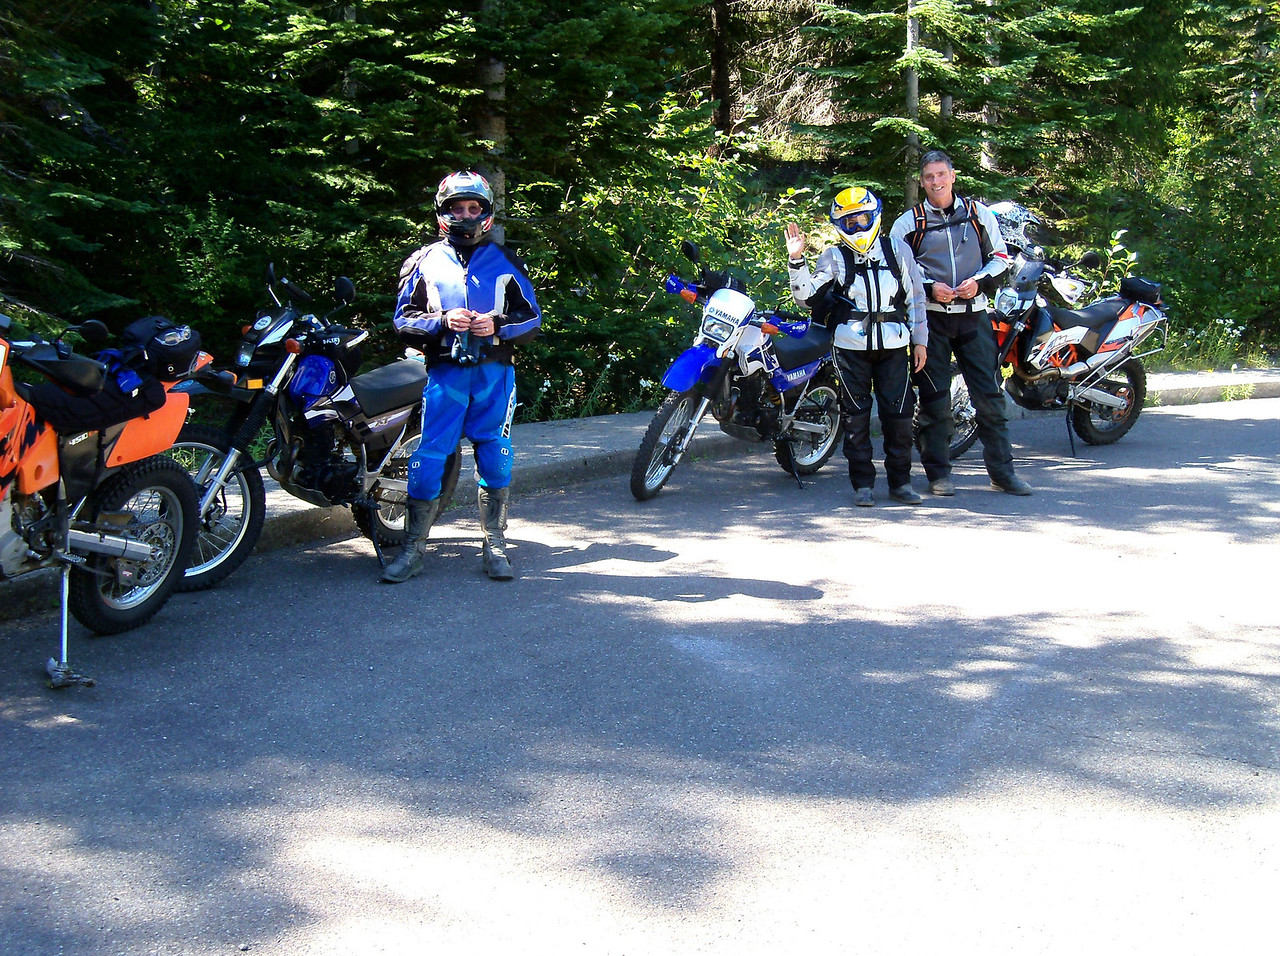 Wednesday, Sept. 12, we rode up Mt St Helens on the 26 Rd..